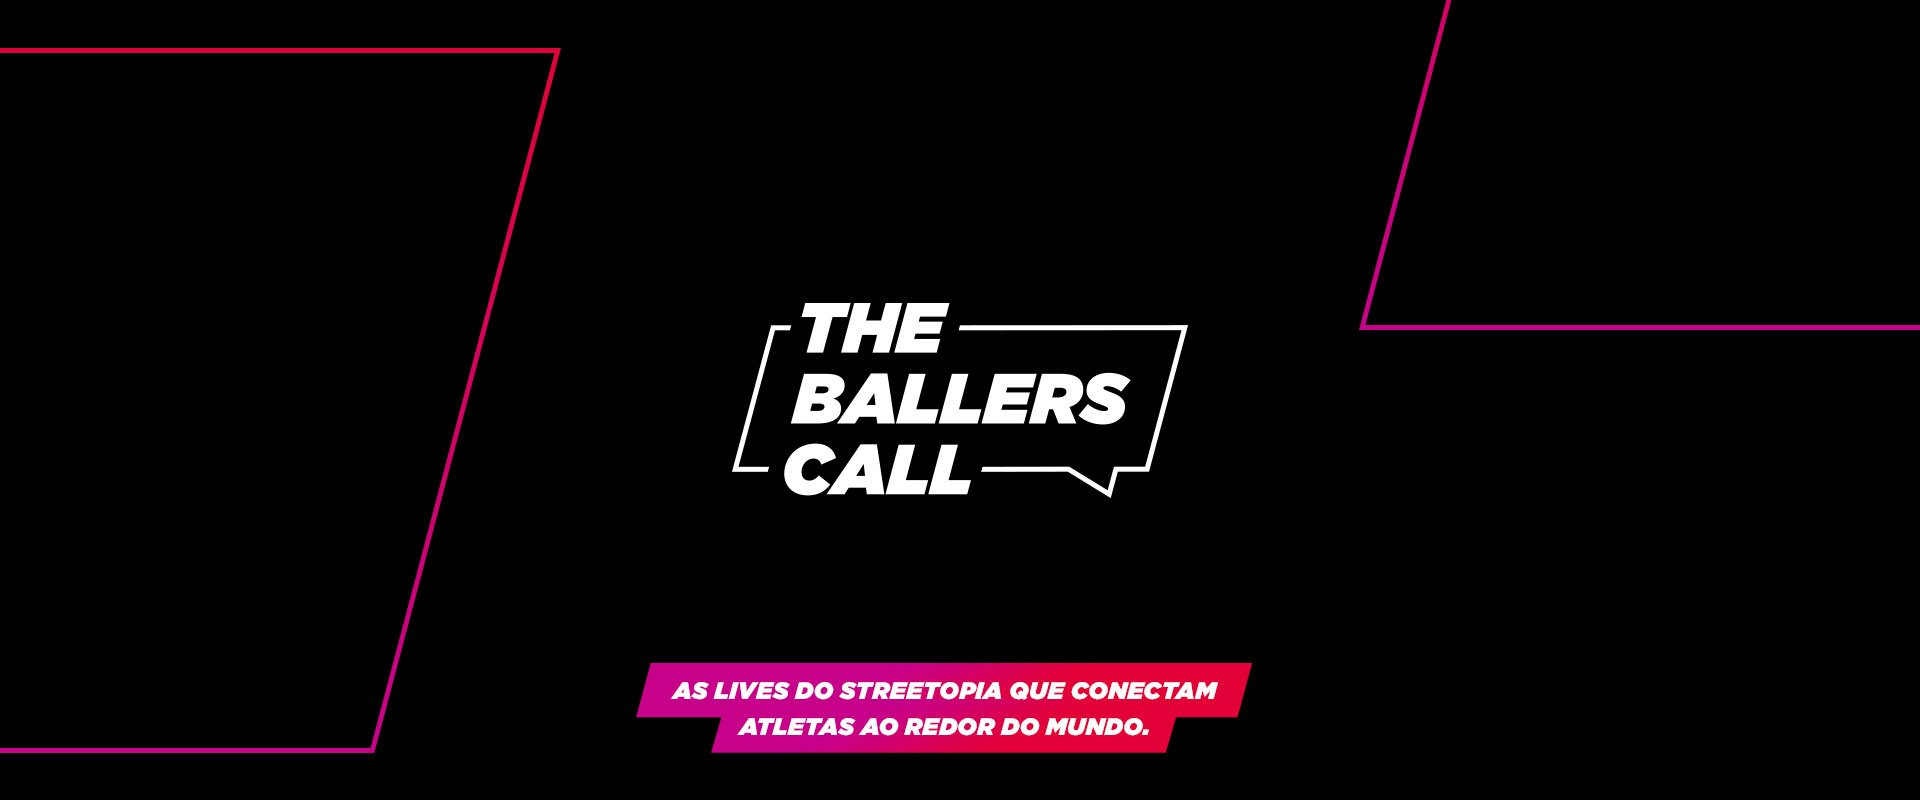 The Ballers Call